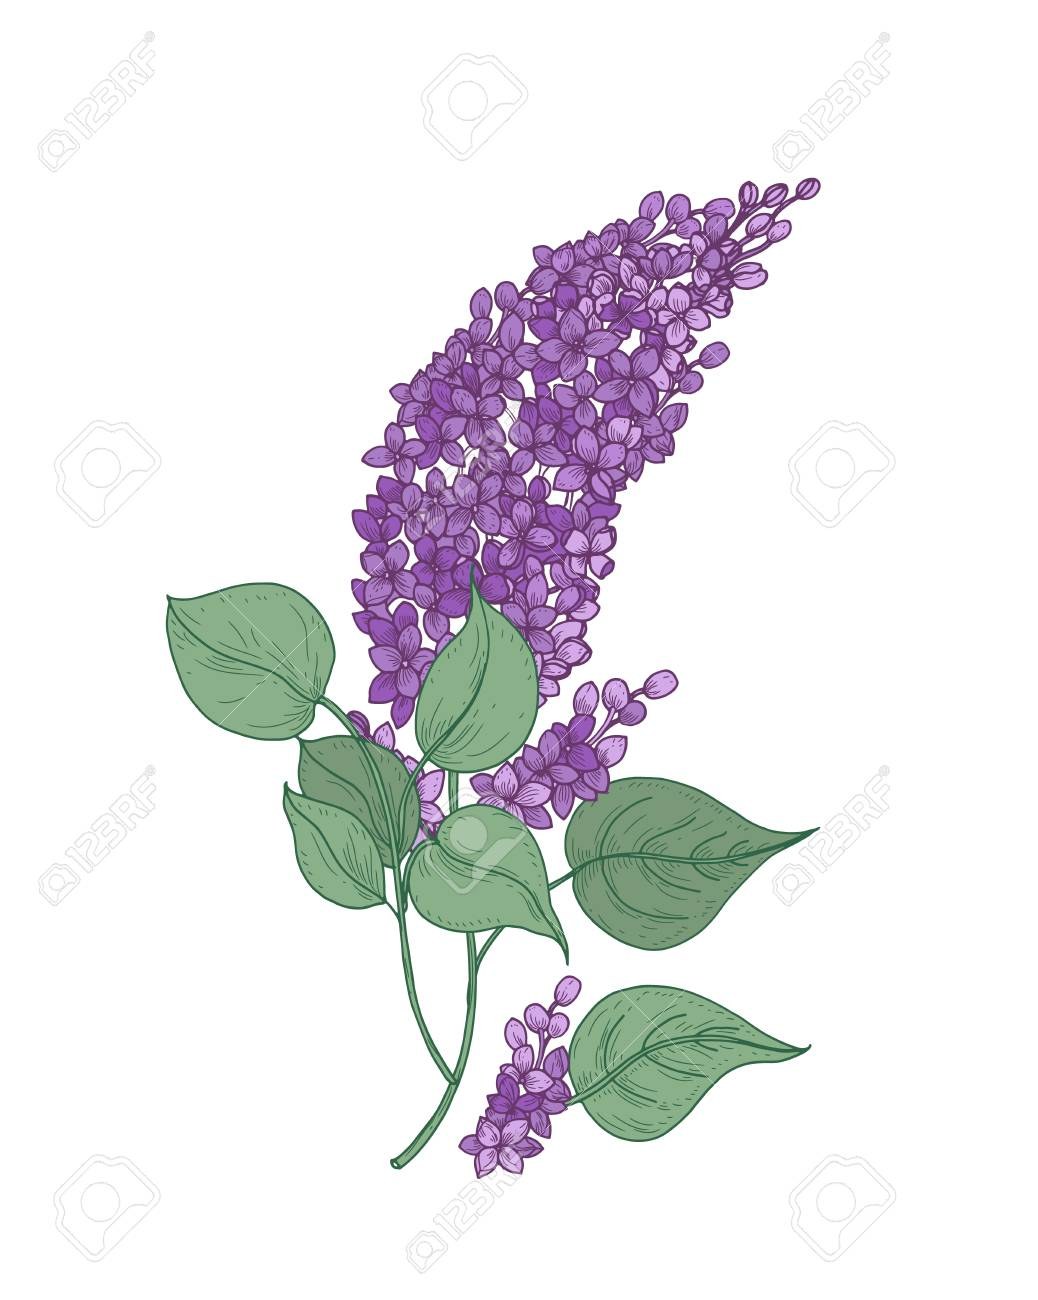 Lilac Flower Drawing : lilac, flower, drawing, Detailed, Botanical, Drawing, Lilac, Branch, Purple, Flowers.., Royalty, Cliparts,, Vectors,, Stock, Illustration., Image, 97311868.